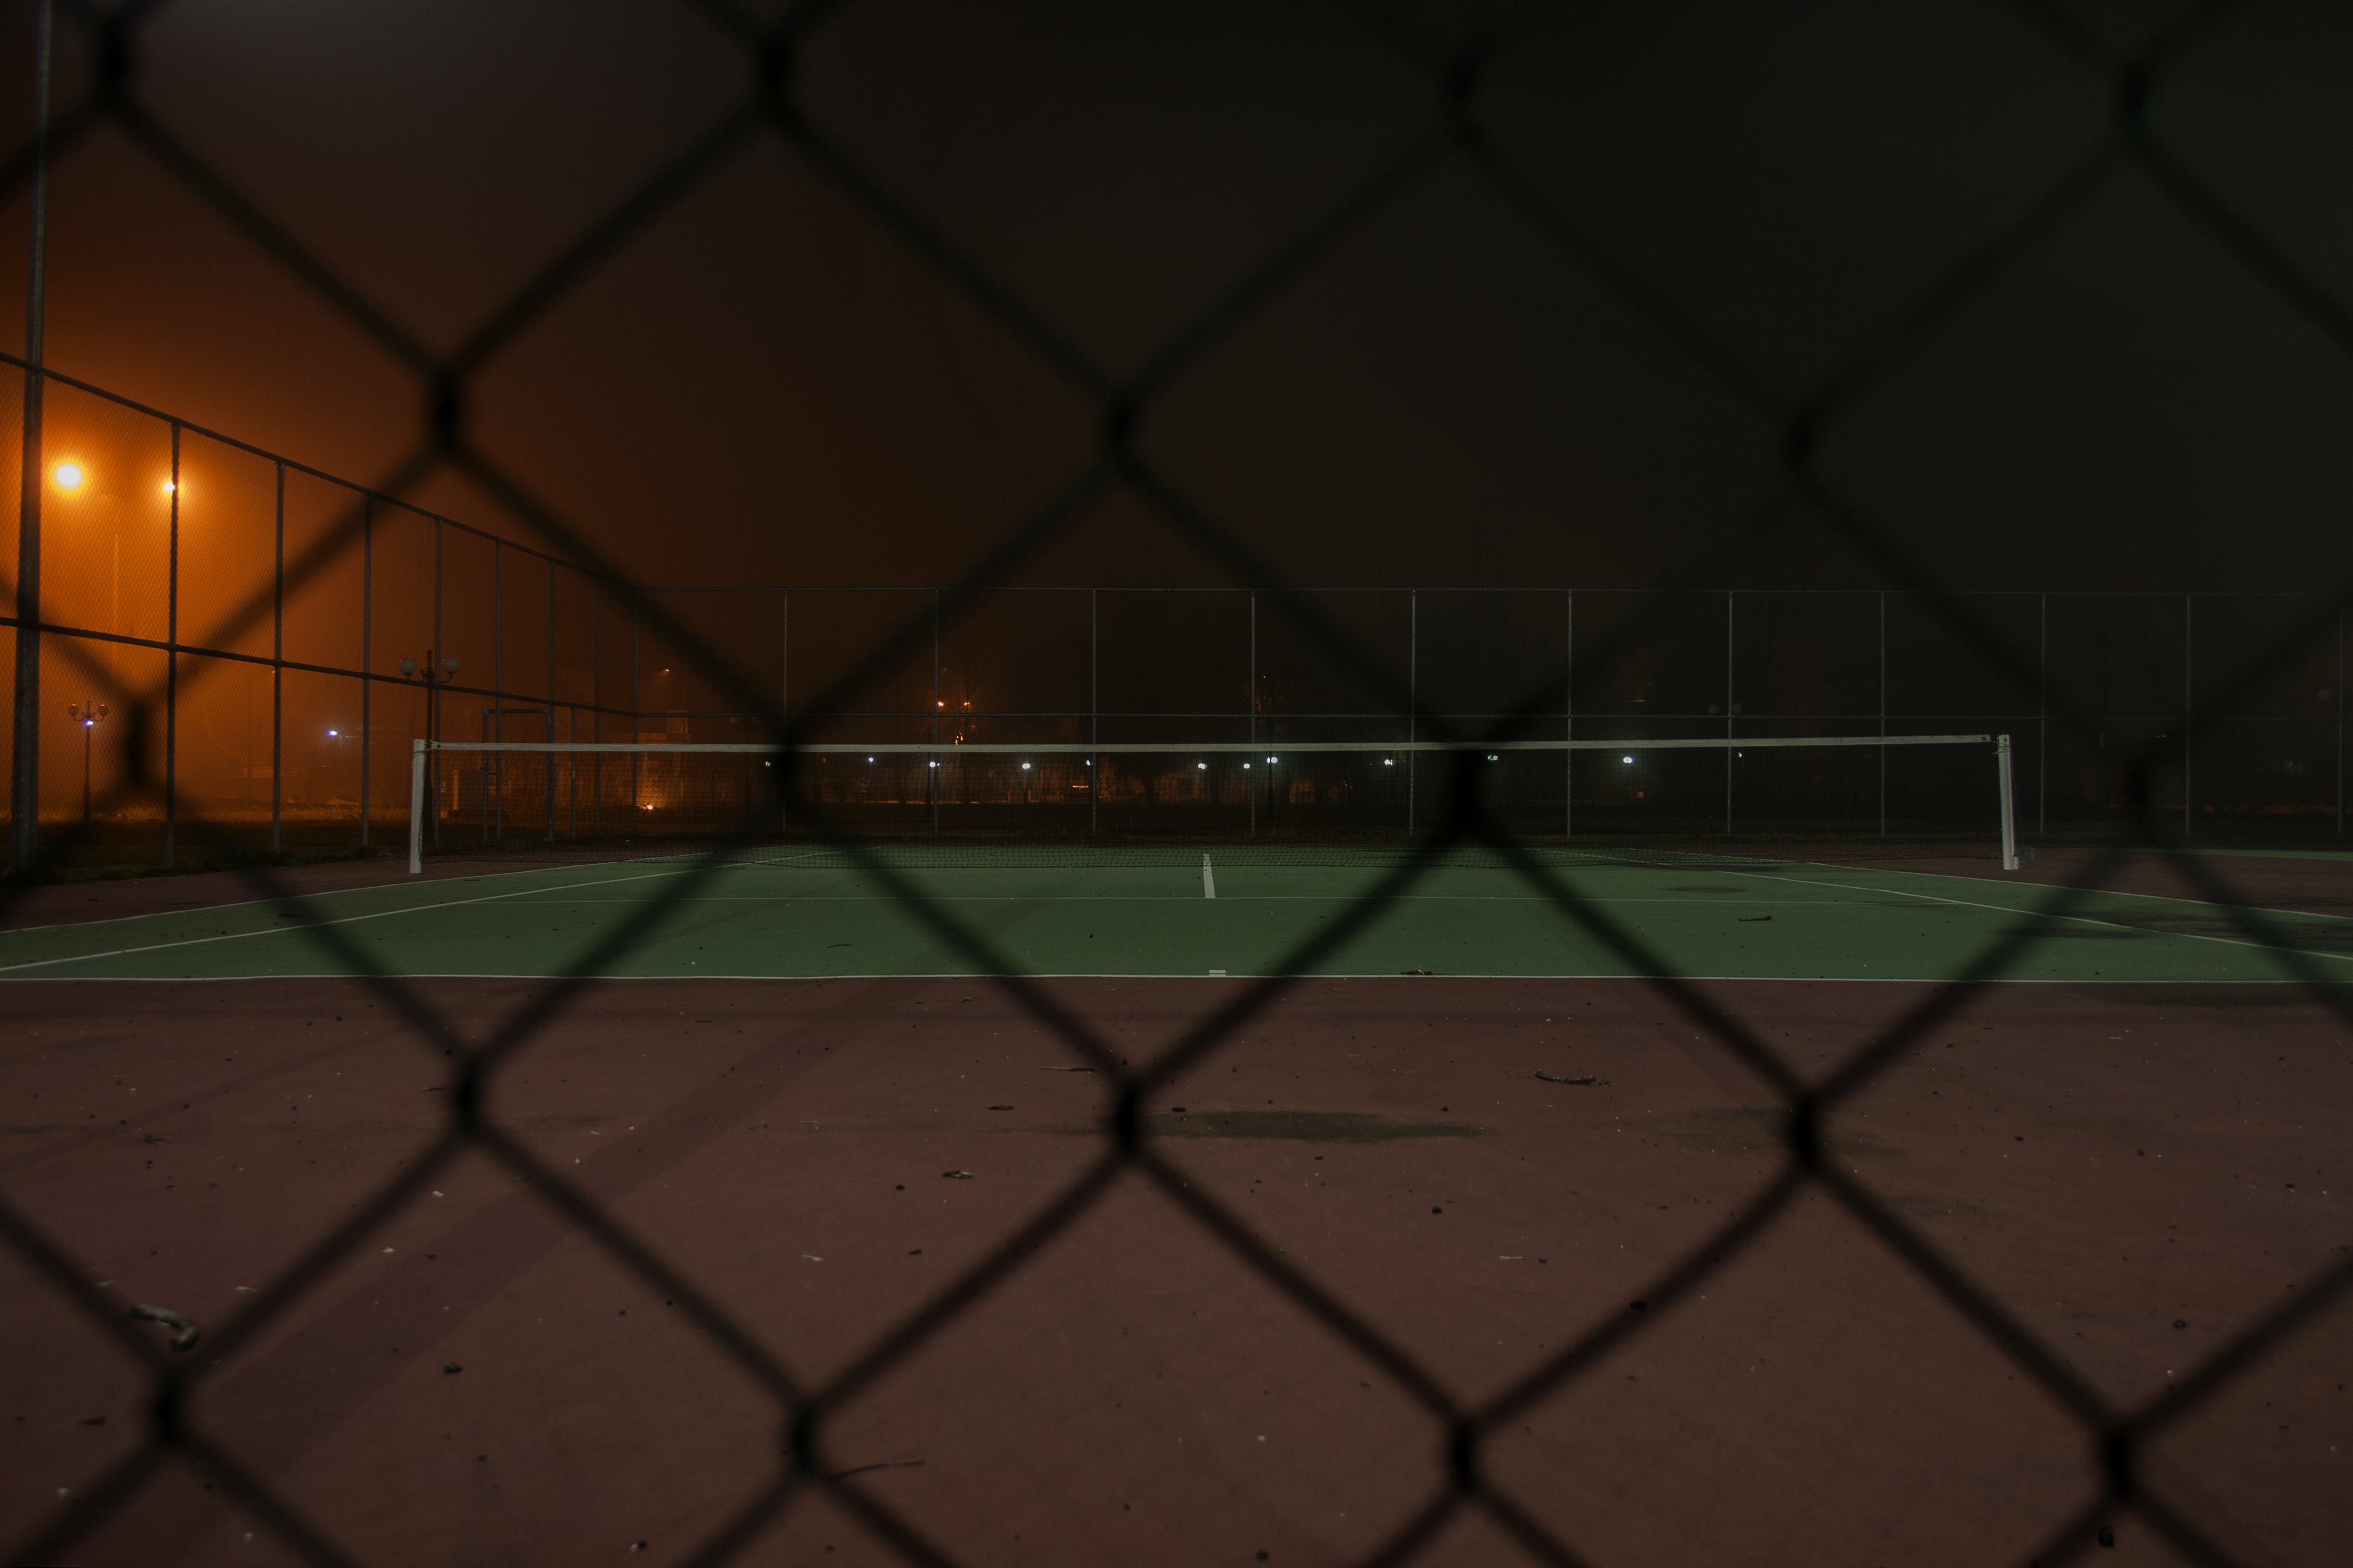 Quite Tennis Field during Nighttime